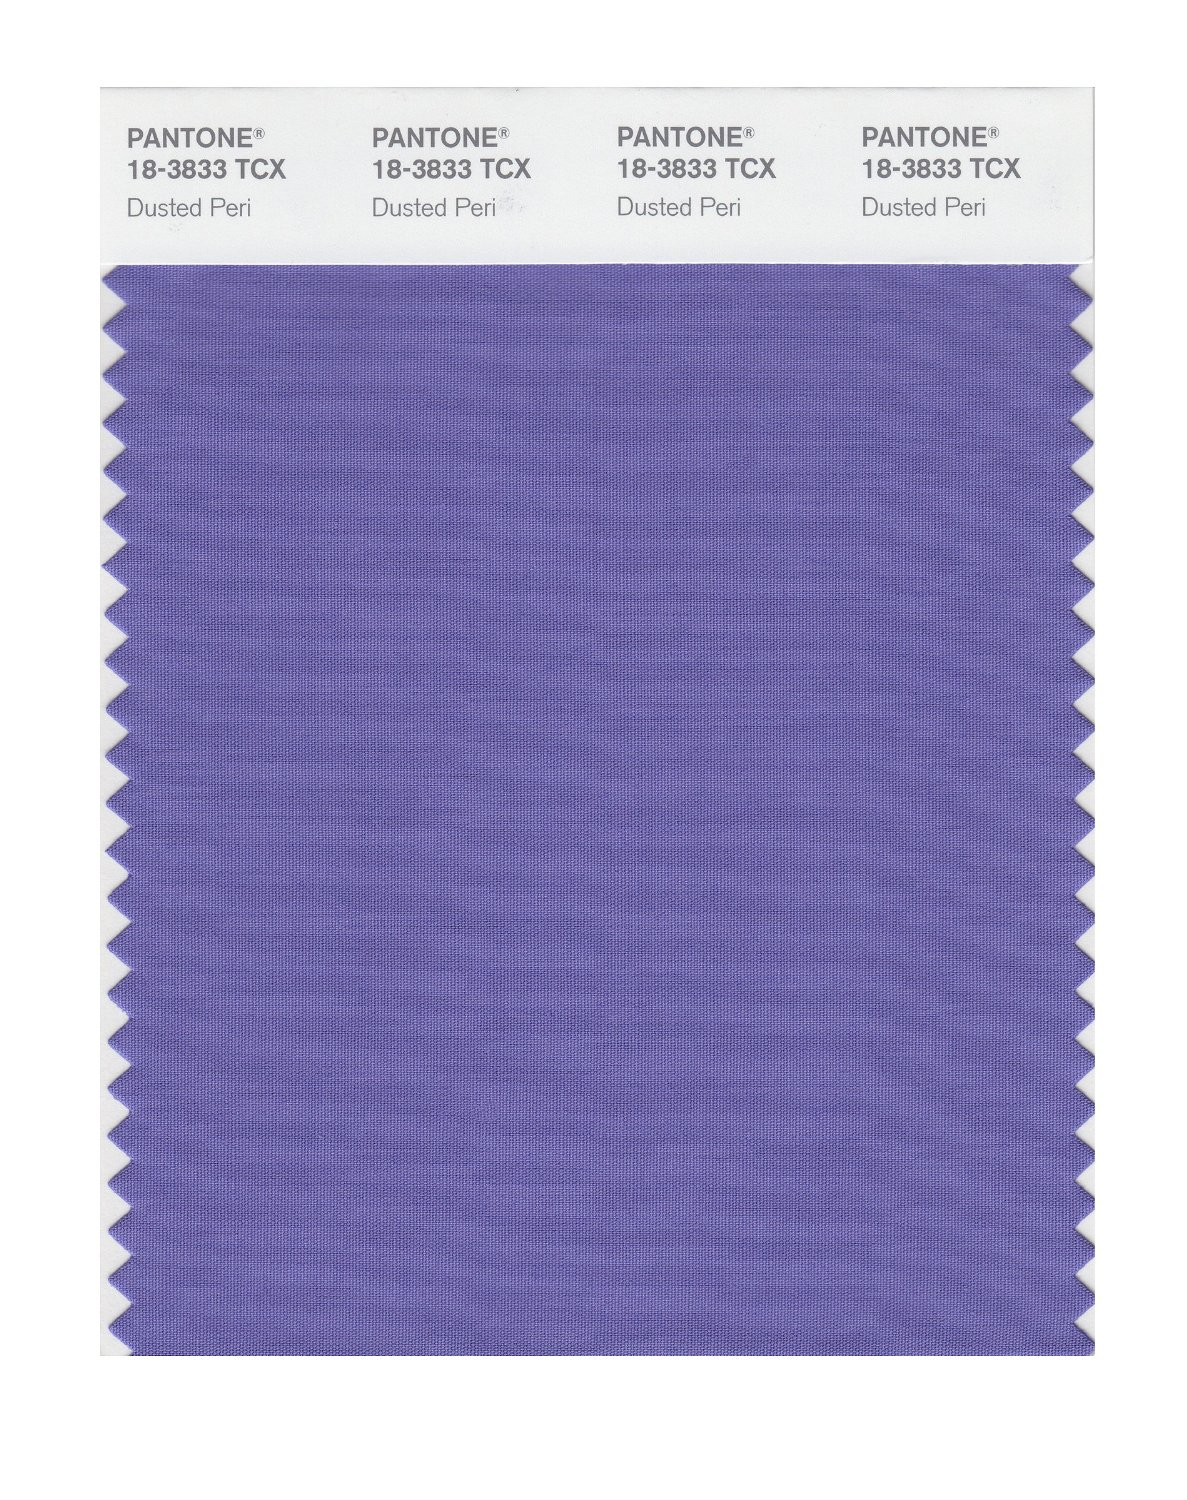 Pantone Smart Swatch 18-3833 Dusted Peri